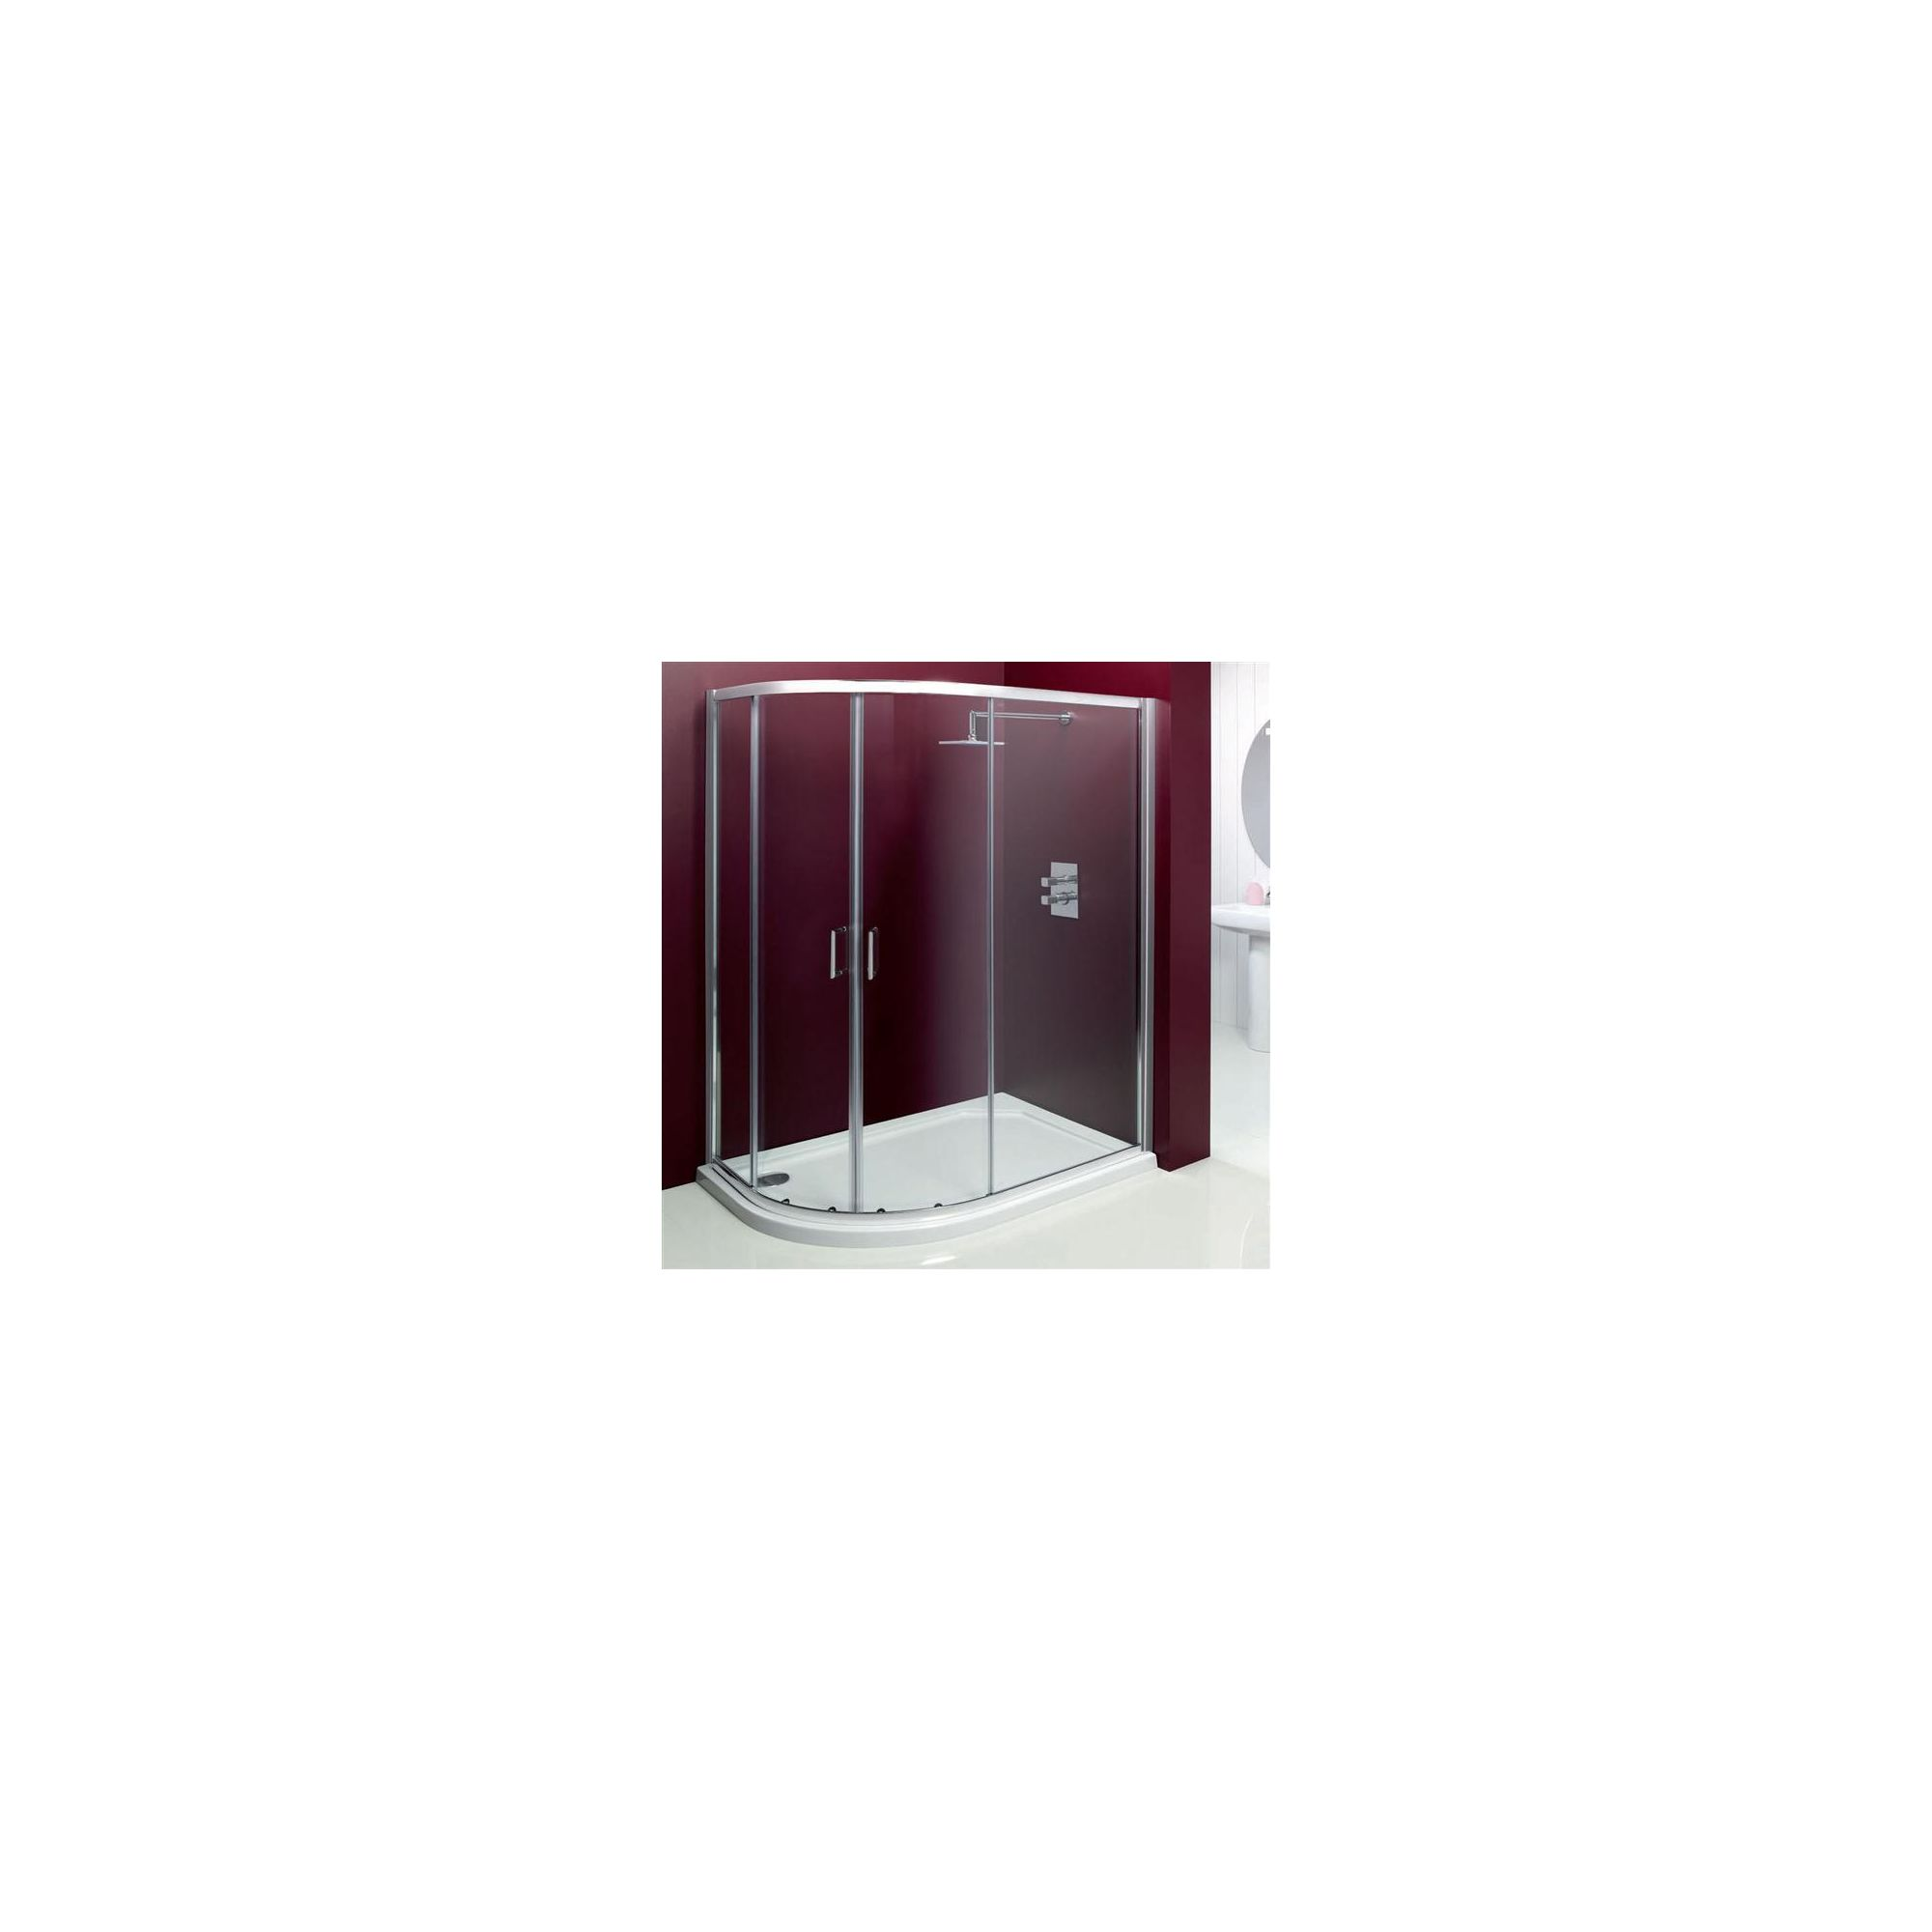 Merlyn Vivid Entree Offset Quadrant Shower Enclosure, 900mm x 760mm, Left Handed, Low Profile Tray, 6mm Glass at Tesco Direct